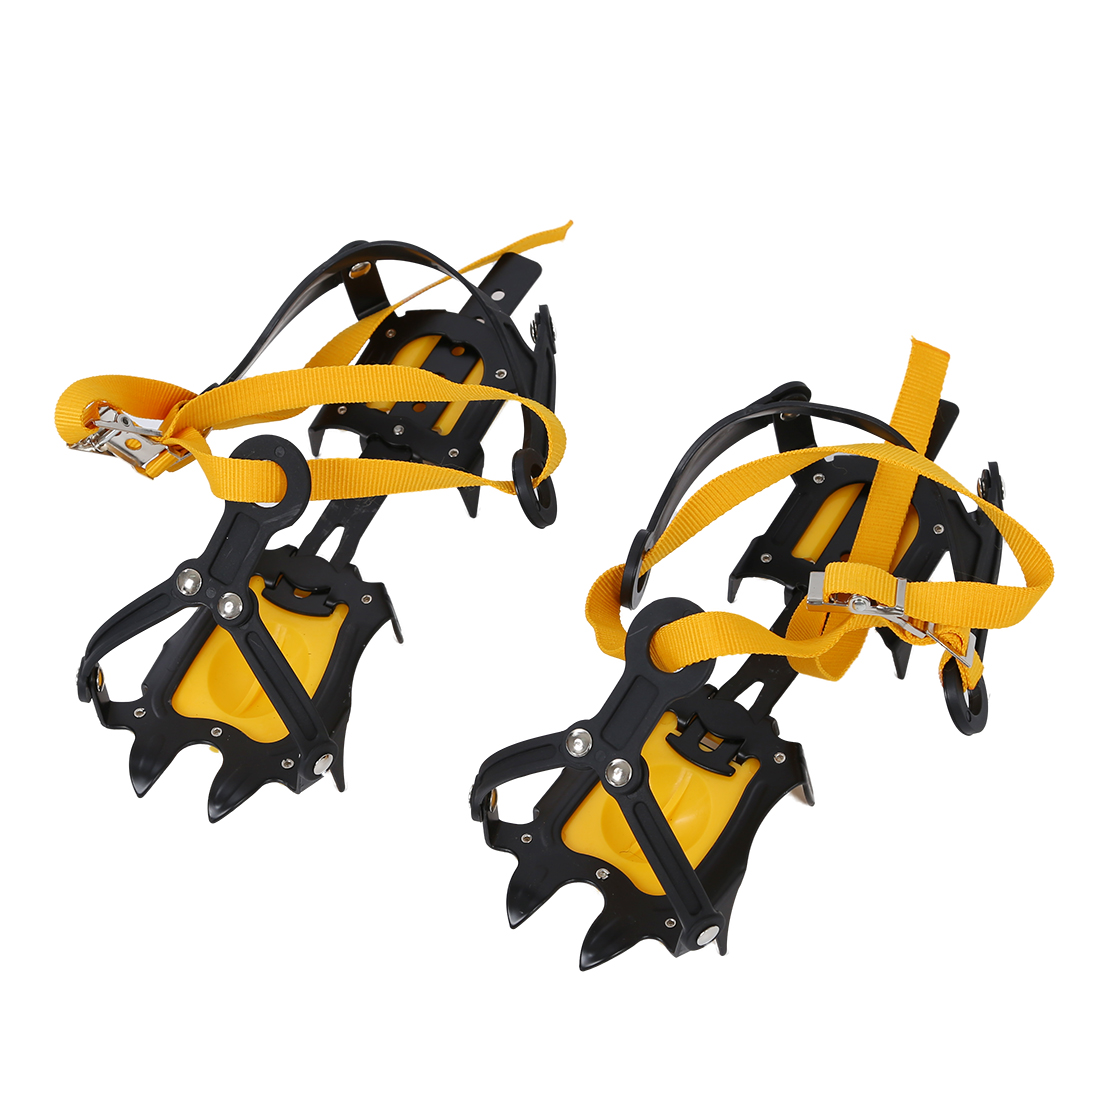 Strap Type Crampons Ski Belt High Altitude Hiking Slip-resistant 10 Crampon